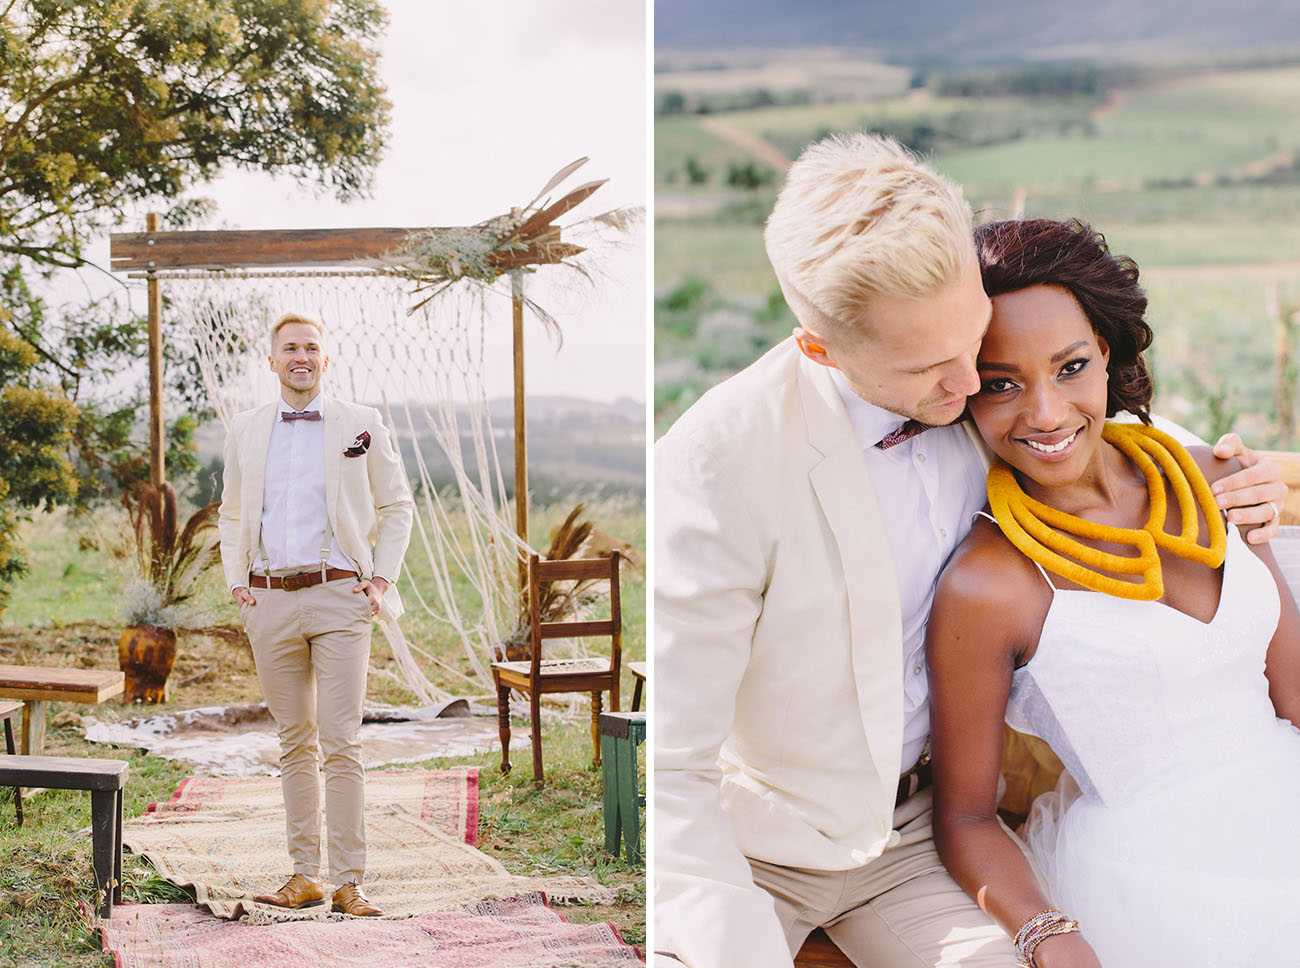 The groom was wearing a cream jacket, sand colored pants, a bow tie and some leather accessories